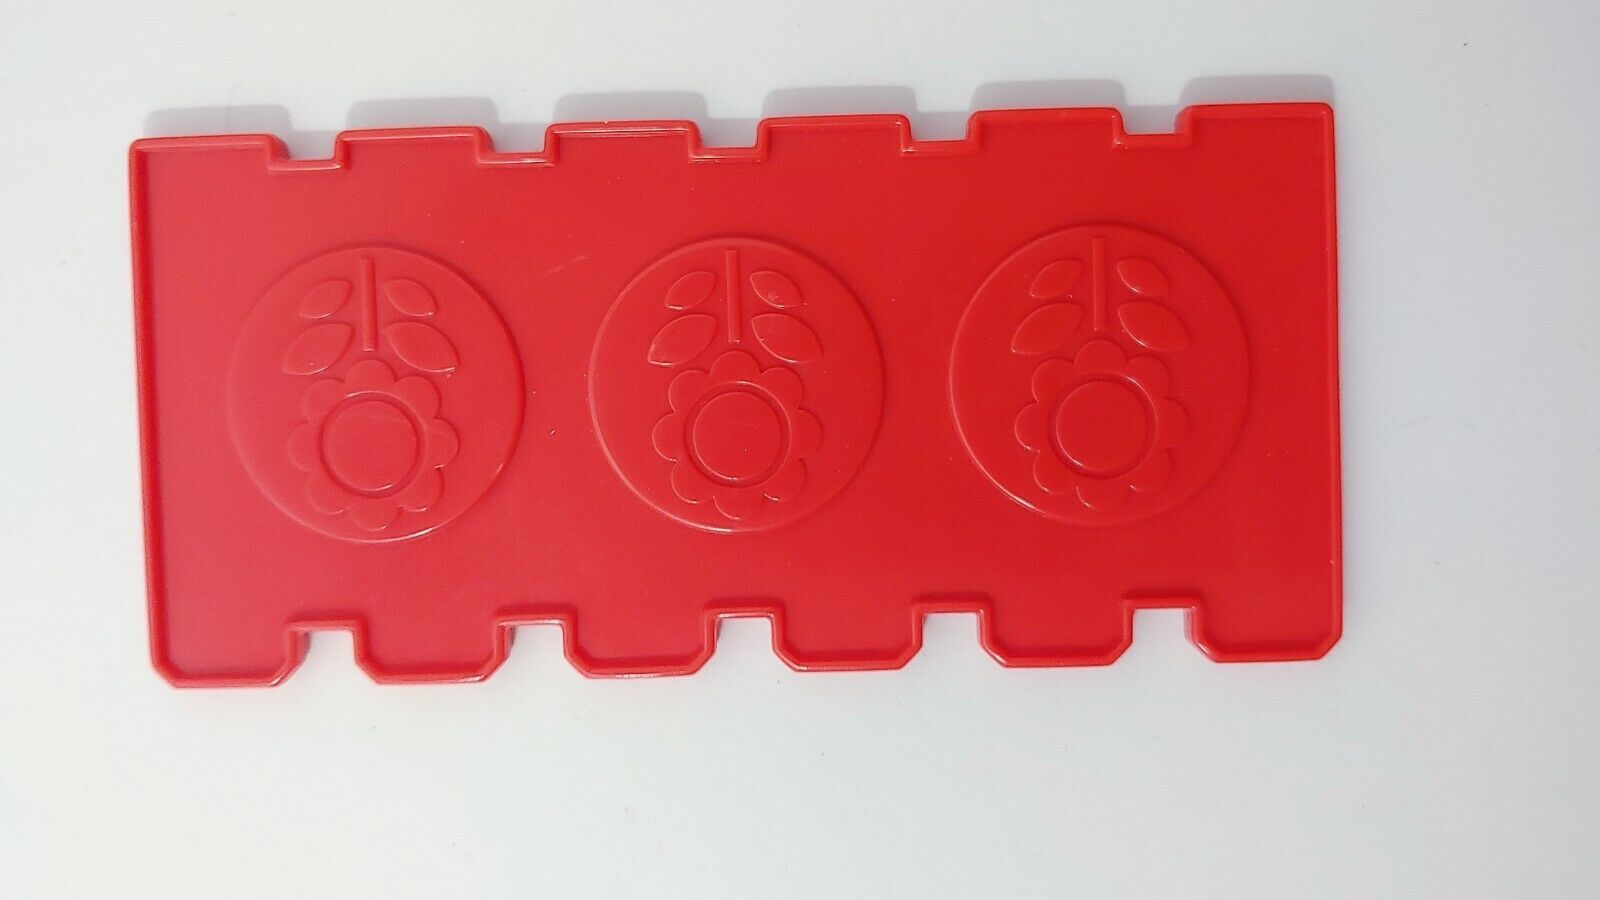 Fisher Price Barnyard Bingo game replacement fence board card red USED image 2